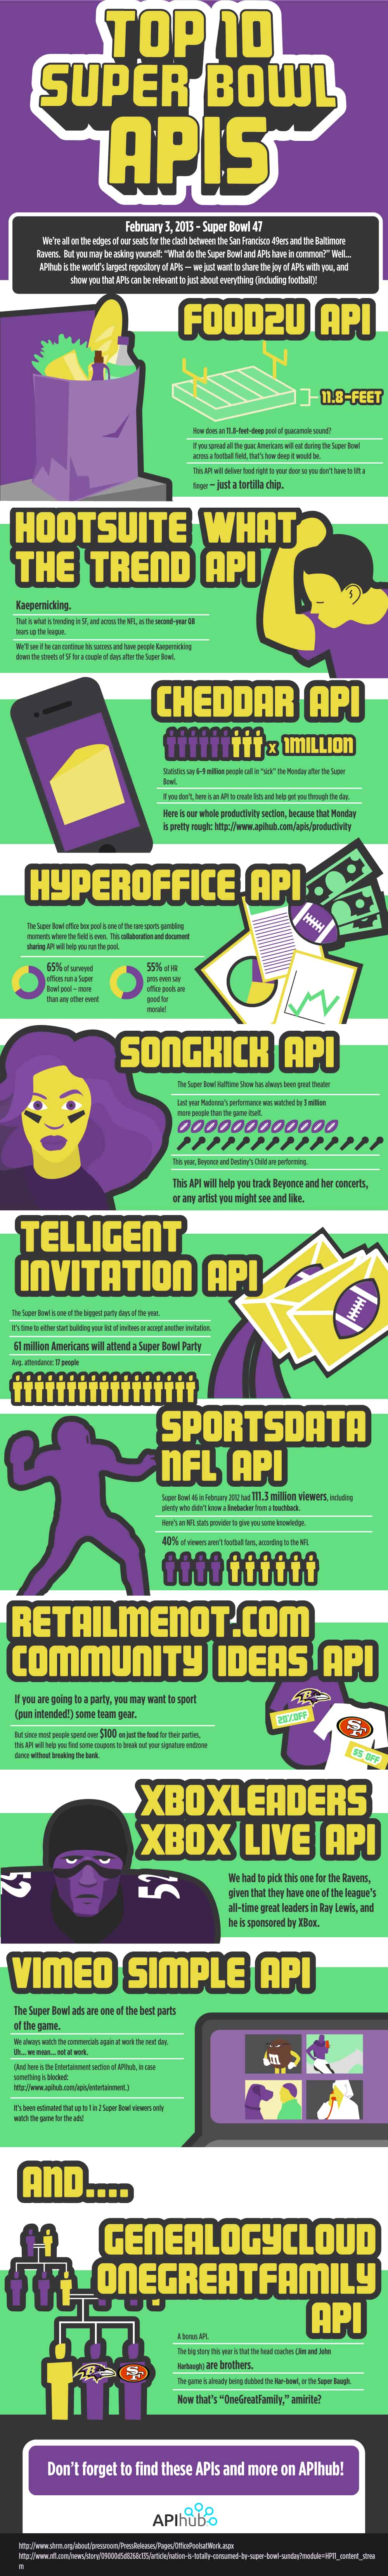 super bowl, api, api hub, infographic